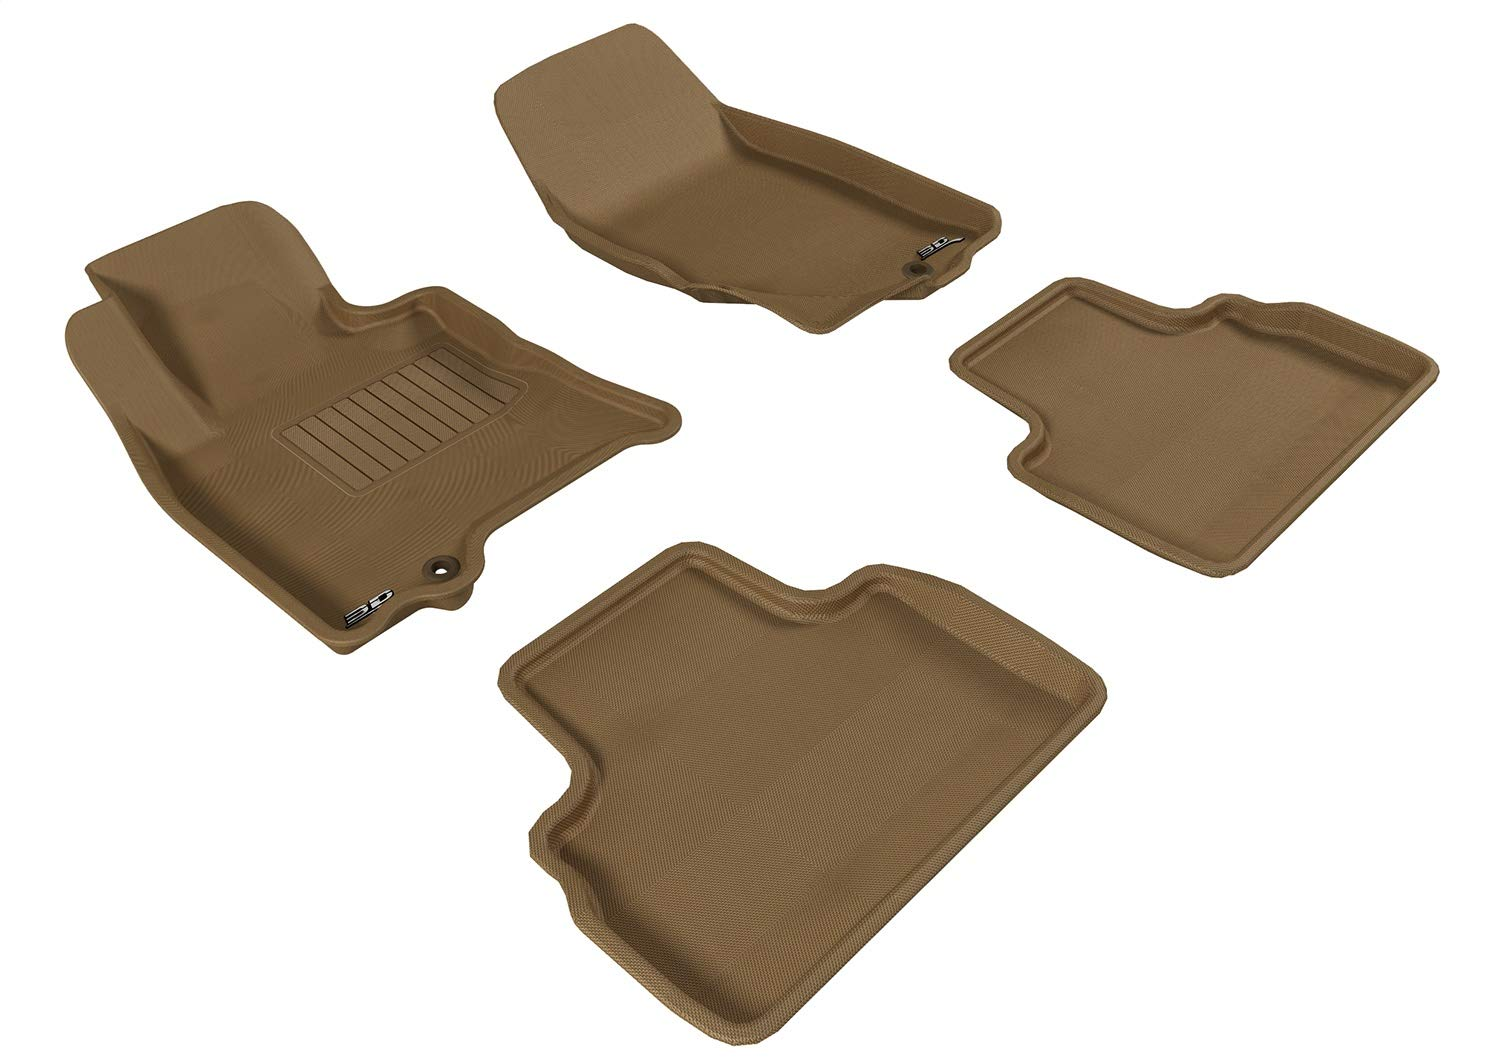 Tan 3D MAXpider Second Row Custom Fit All-Weather Floor Mat for Select Chevrolet Camaro Models Kagu Rubber